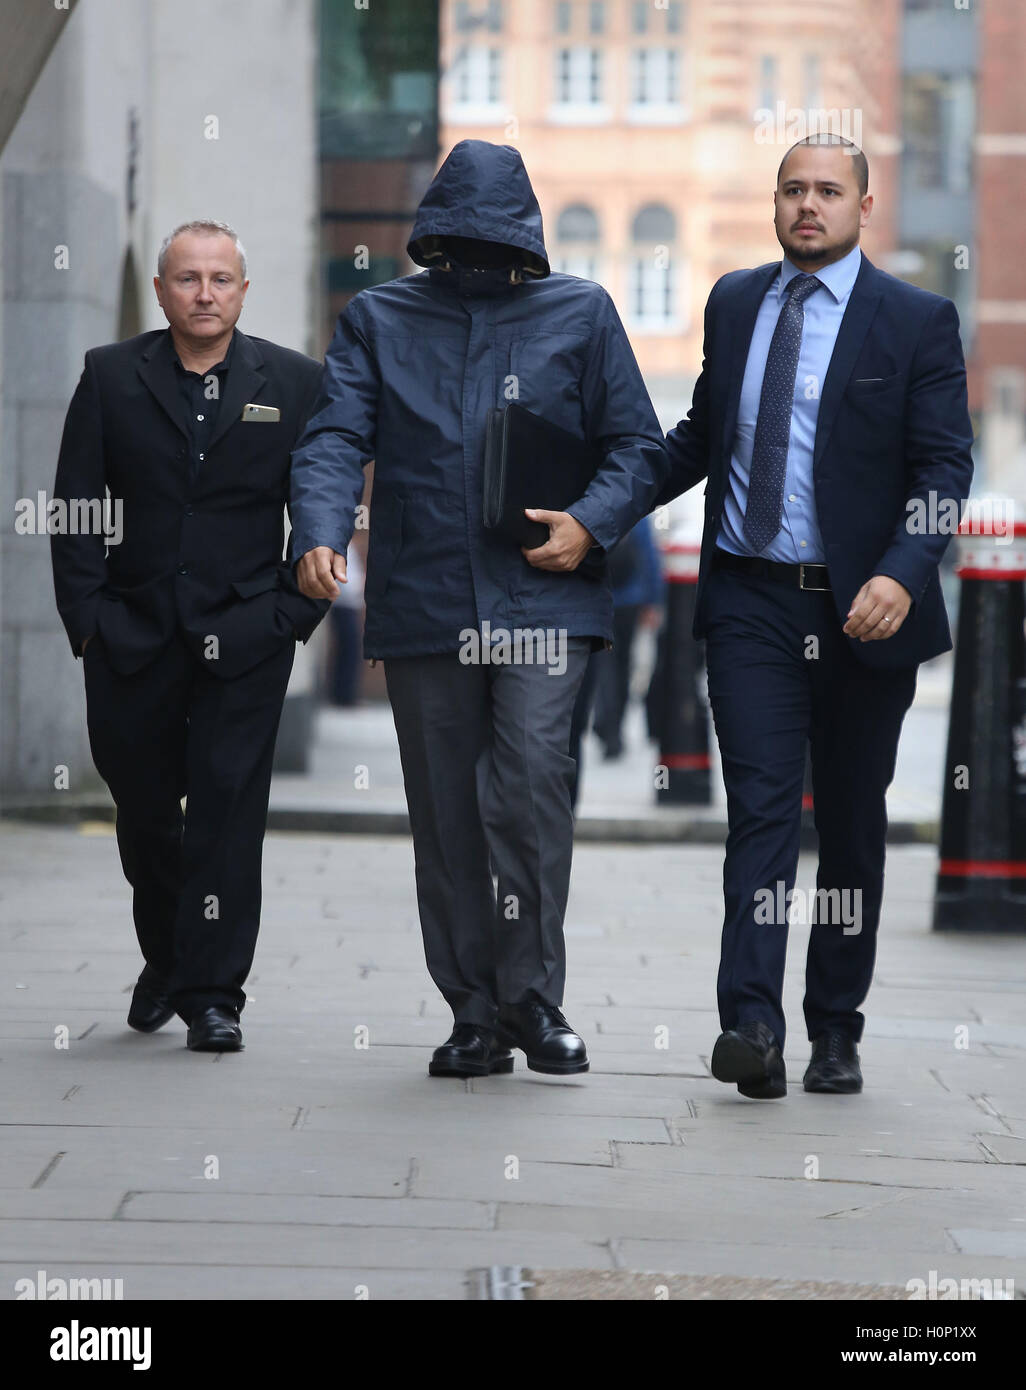 """Undercover journalist Mazher Mahmood (centre), who was known as the """"Fake Sheikh"""", arrives at - Stock Image"""